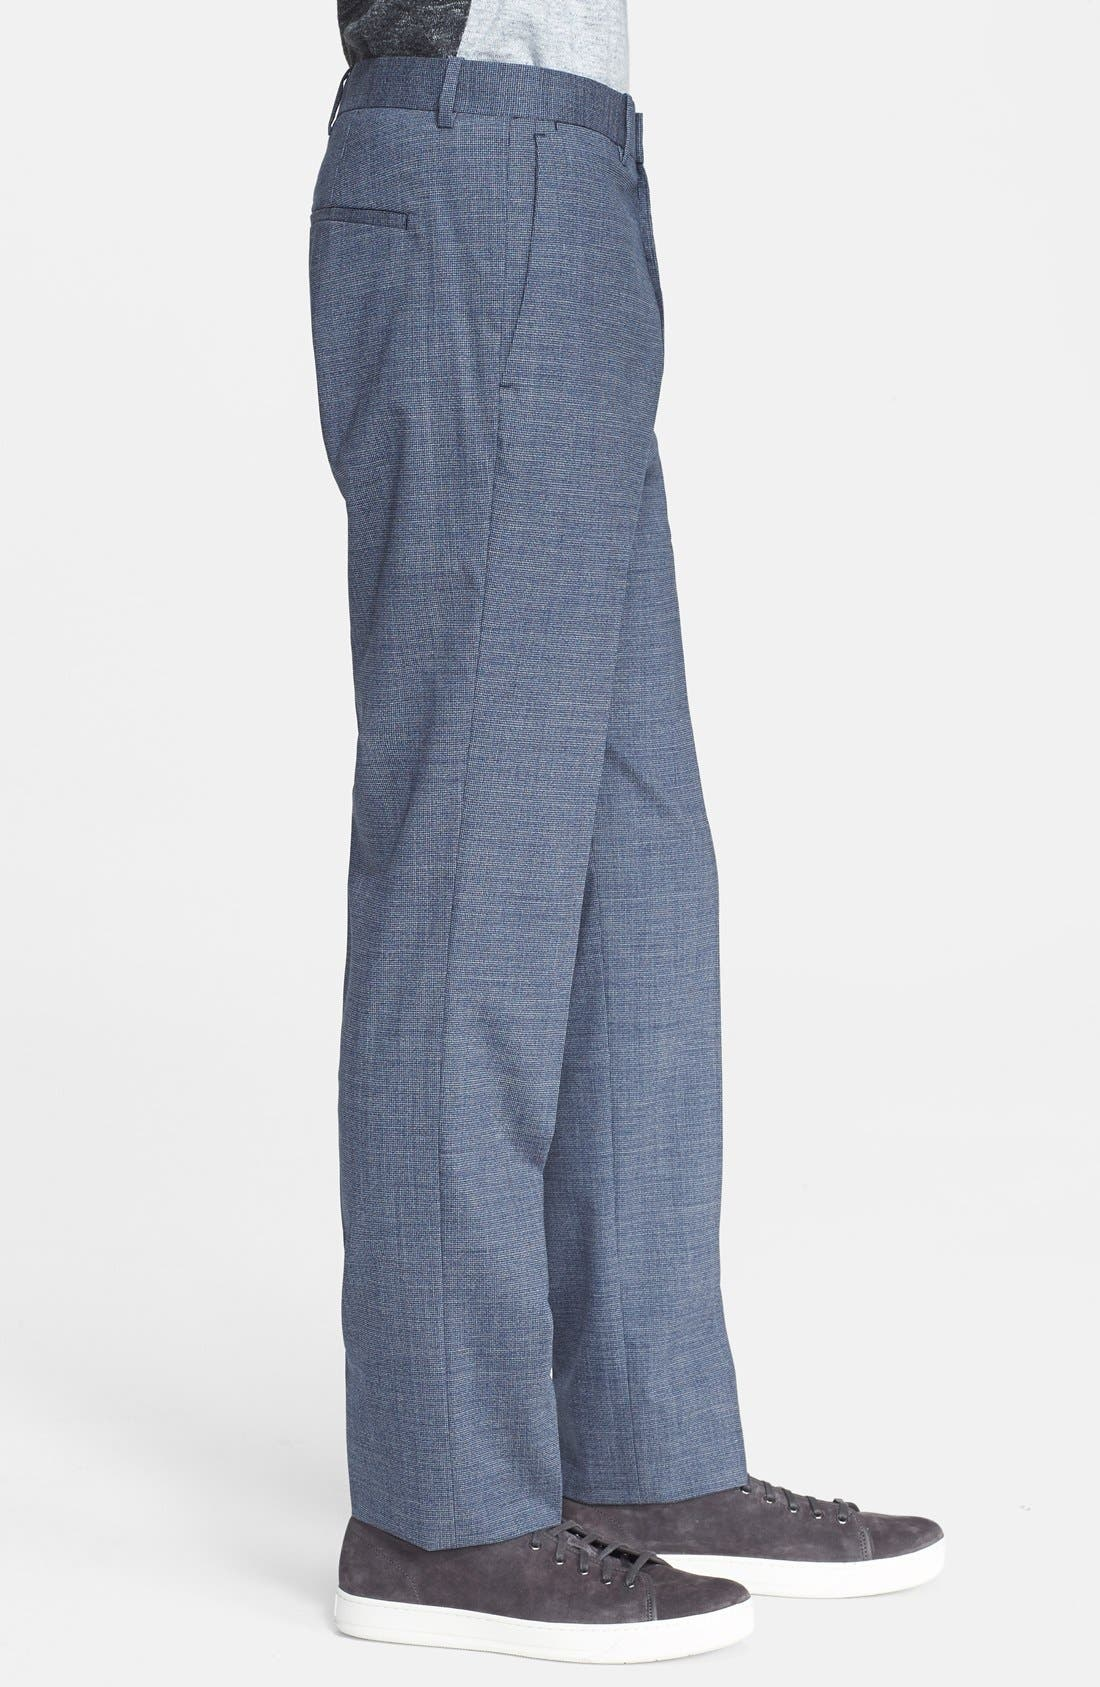 THEORY, 'Jake' Stretch Wool Trousers, Alternate thumbnail 3, color, 462